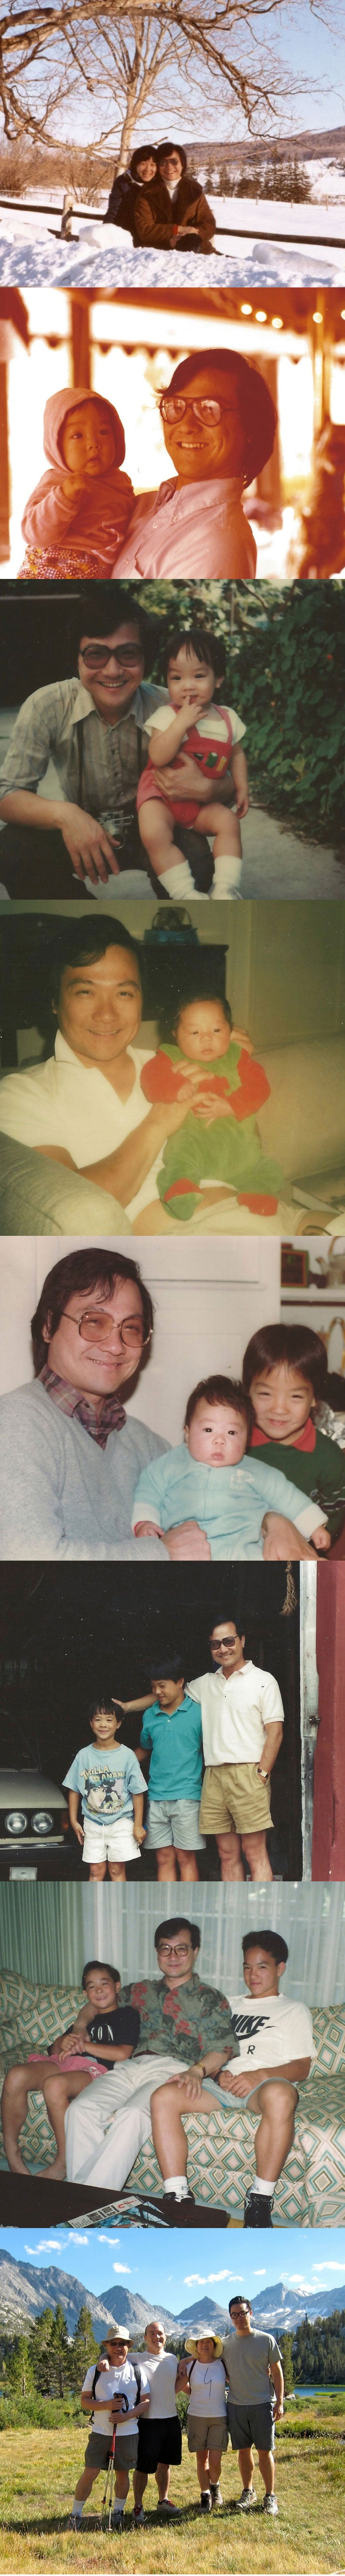 photo collage of Fred with family